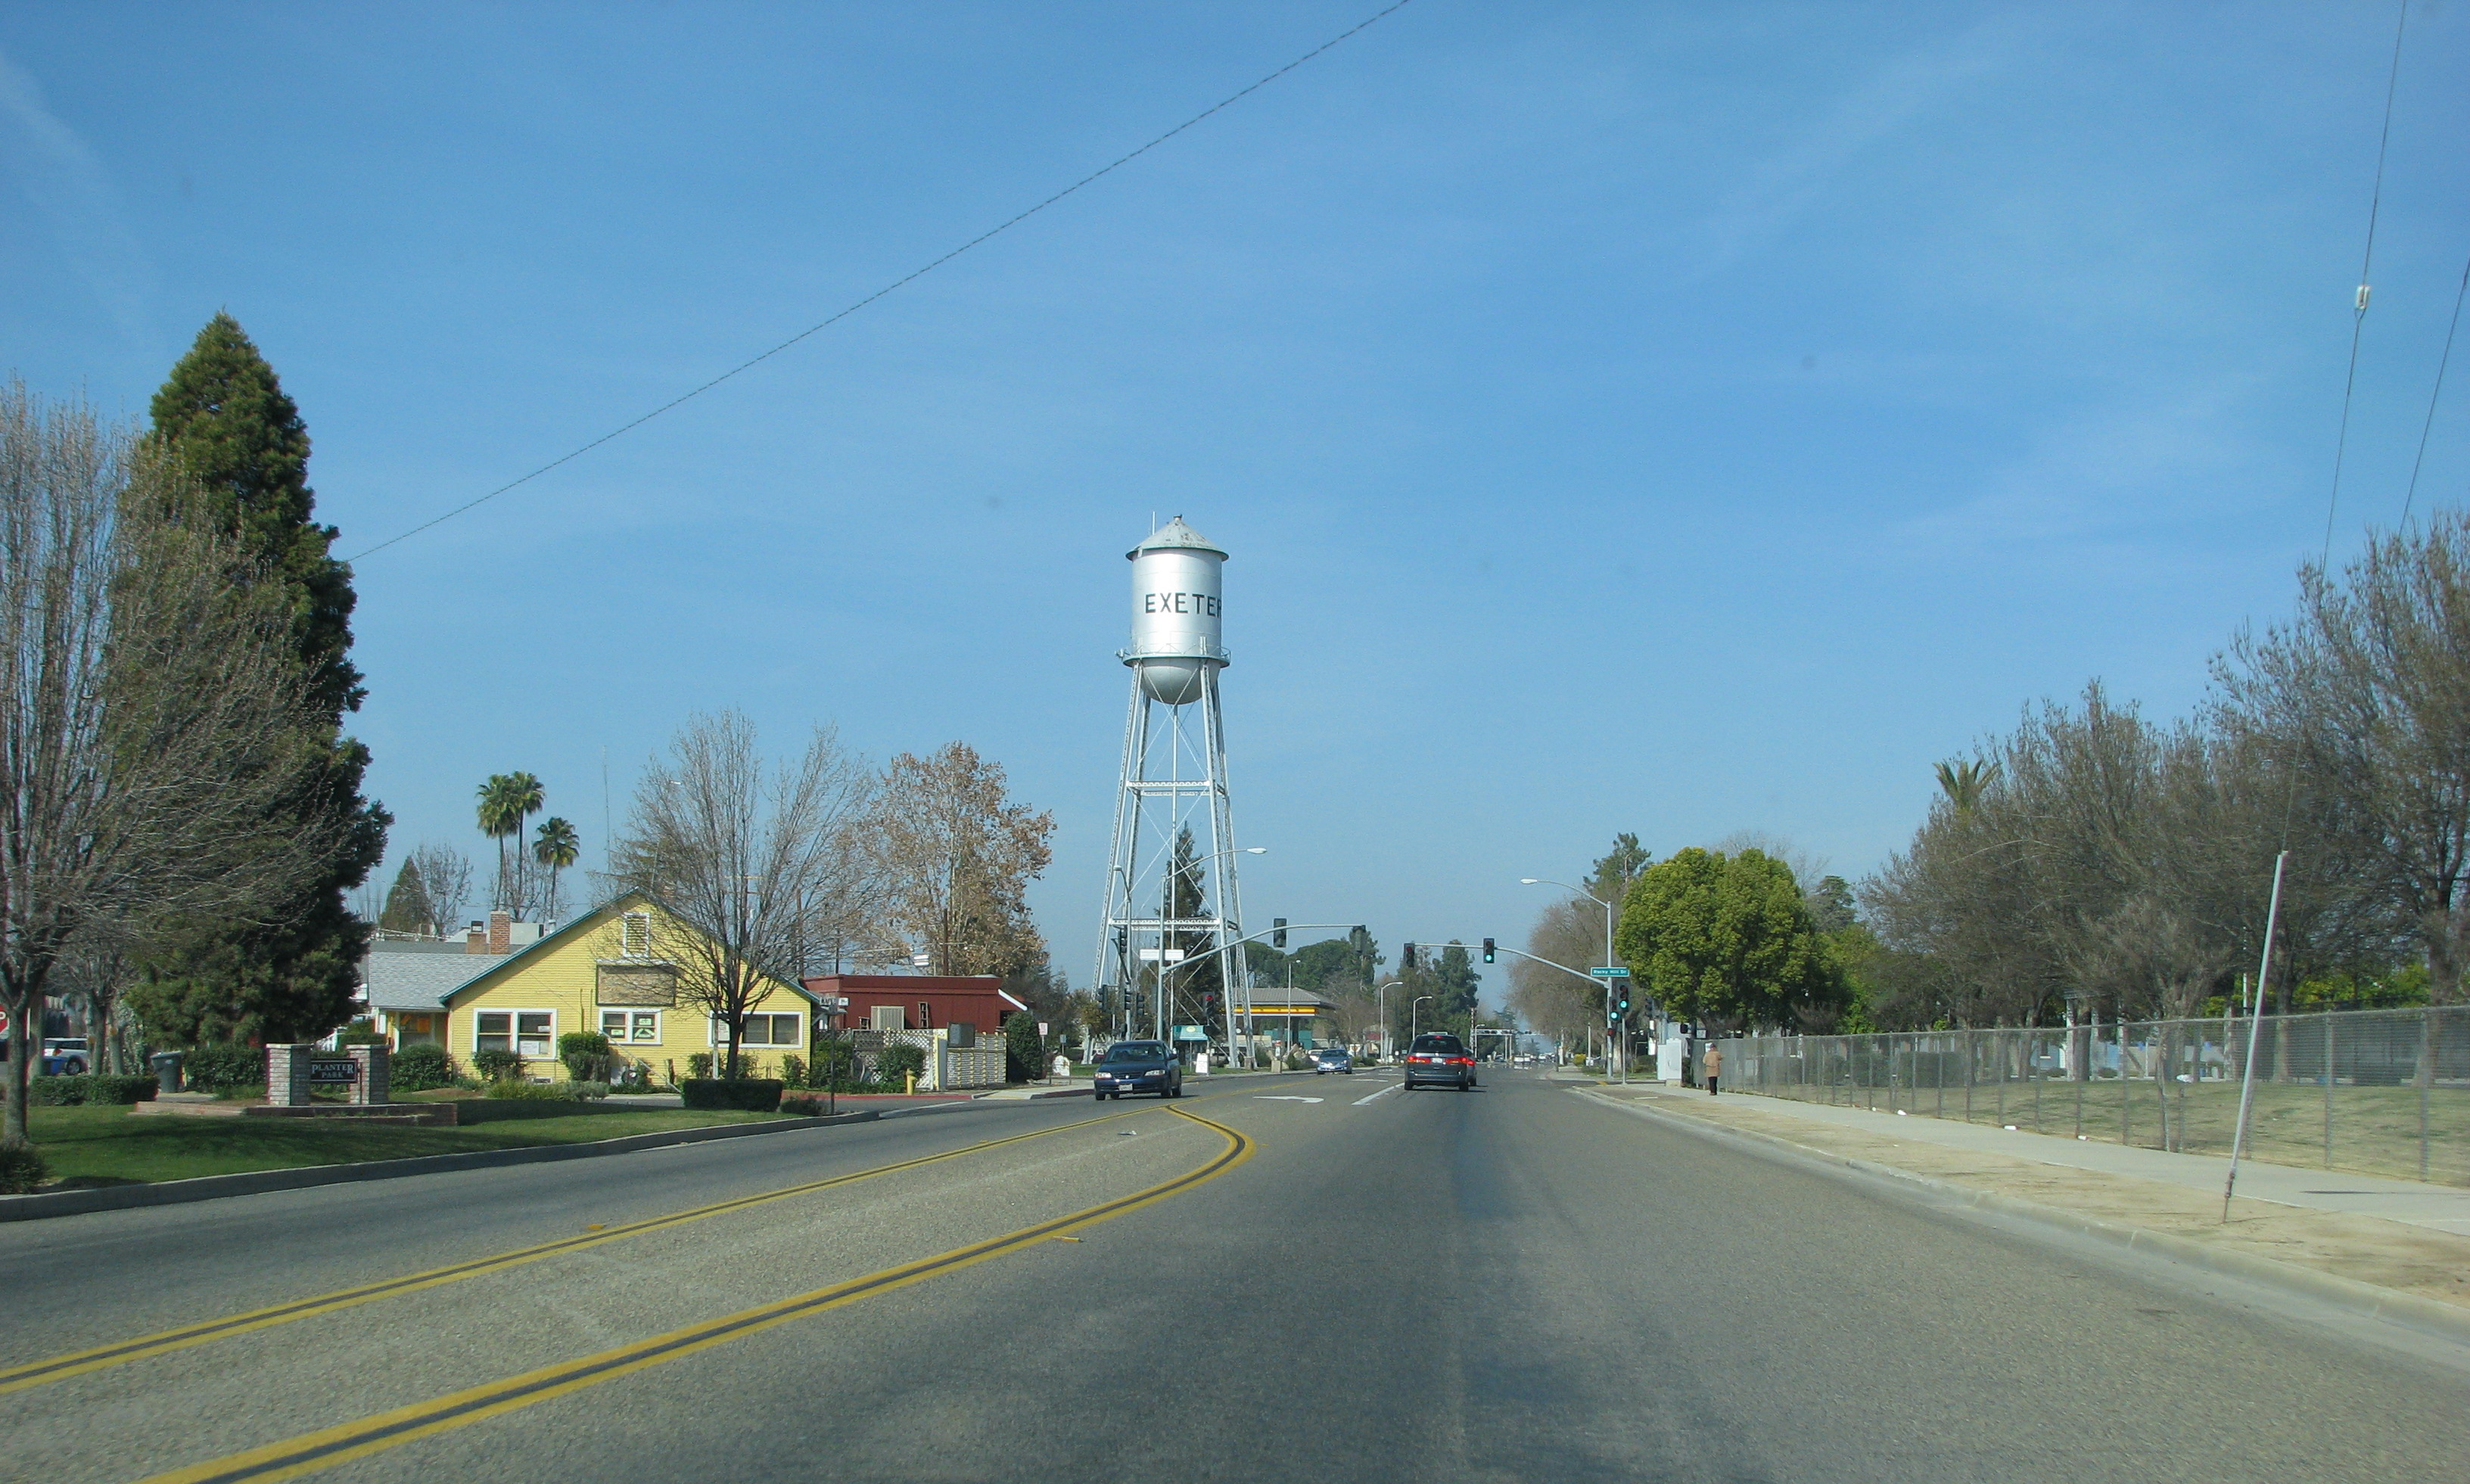 California State Route 65 near Exeter.